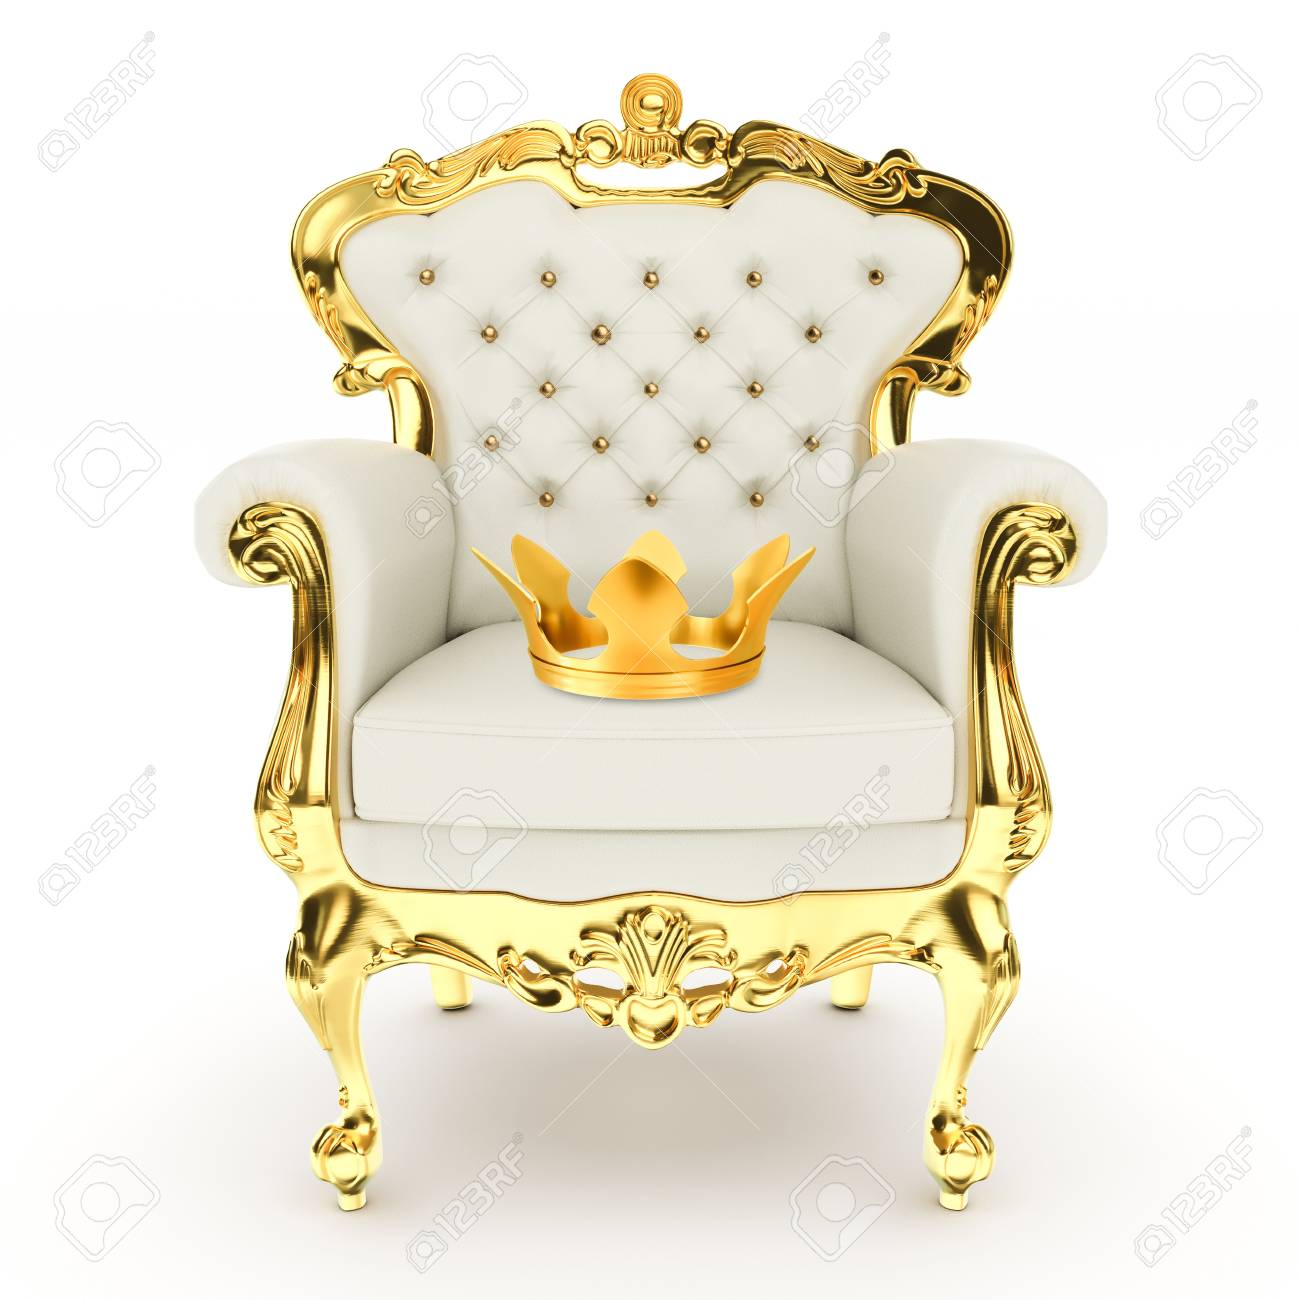 3d kingu0027s throne royal chair with golden crown on white background 3d illustration Stock Illustration  sc 1 st  123RF.com & 3d Kingu0027s Throne Royal Chair With Golden Crown On White Background ...